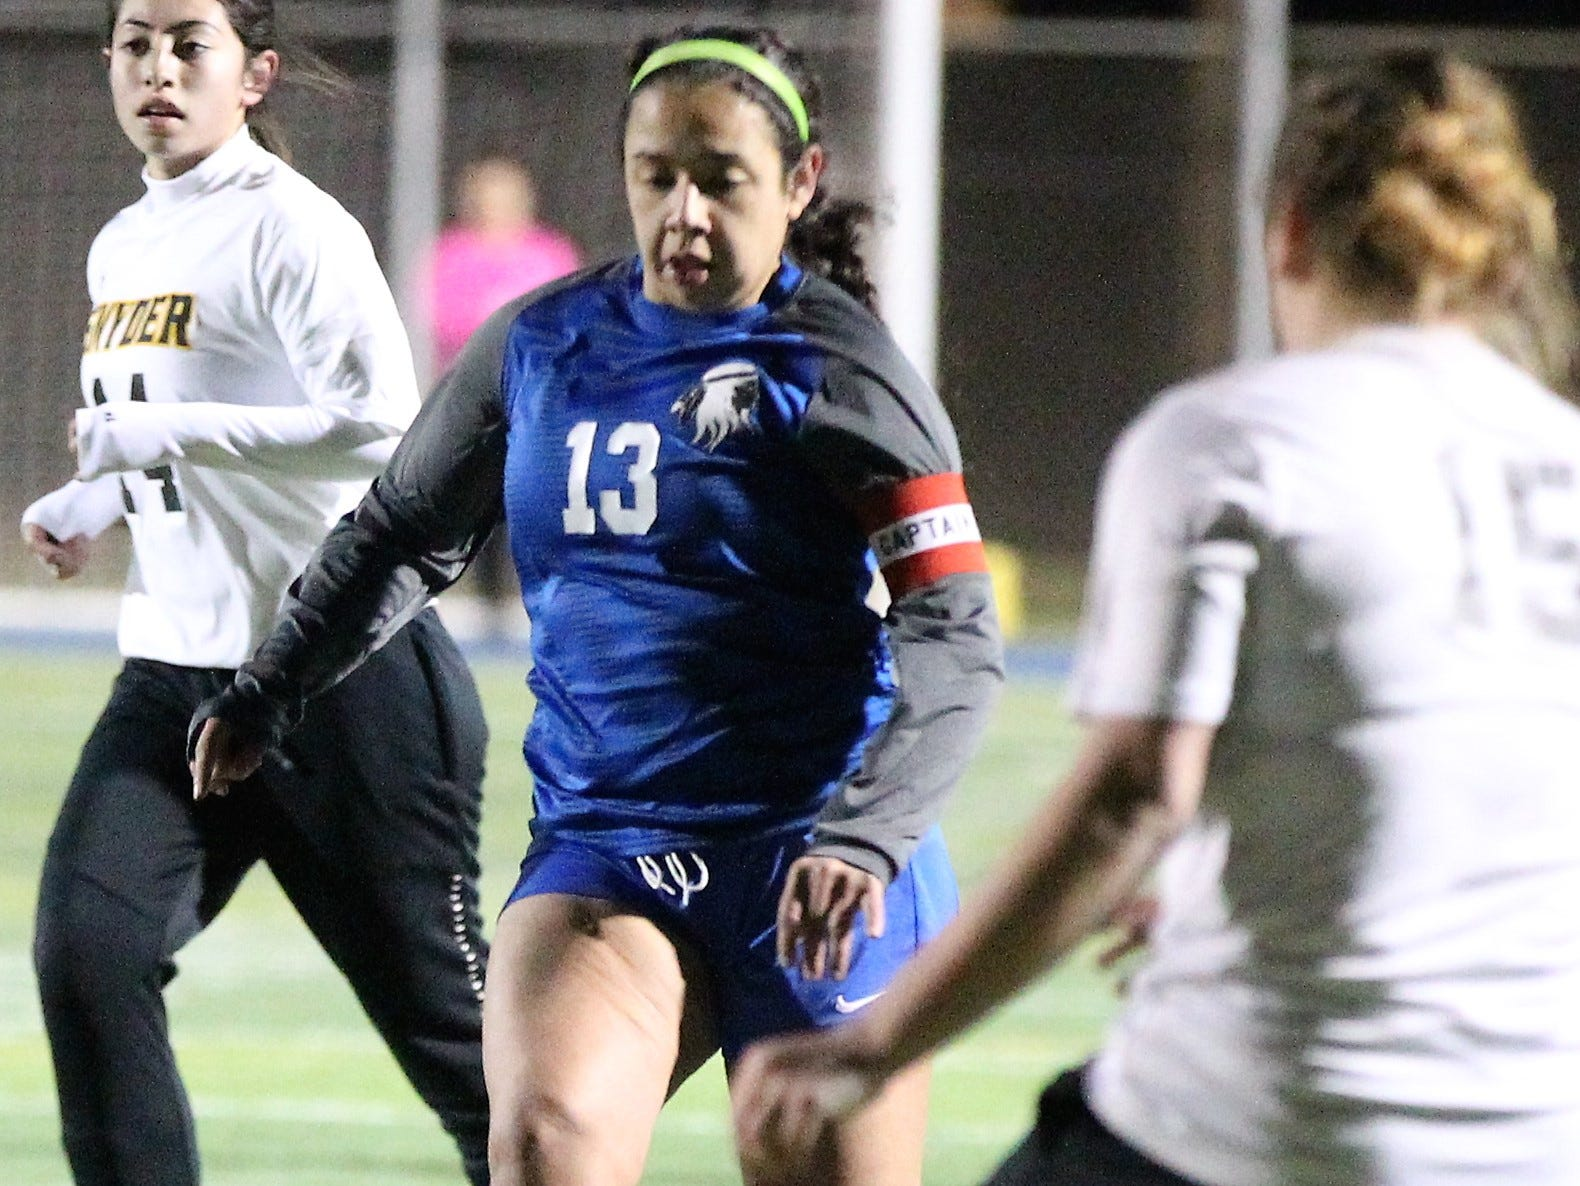 Lake View's Mallory Govea had a hat trick in a District 4-4A soccer match against Snyder at Old Bobcat Stadium on Tuesday, March 5, 2019.